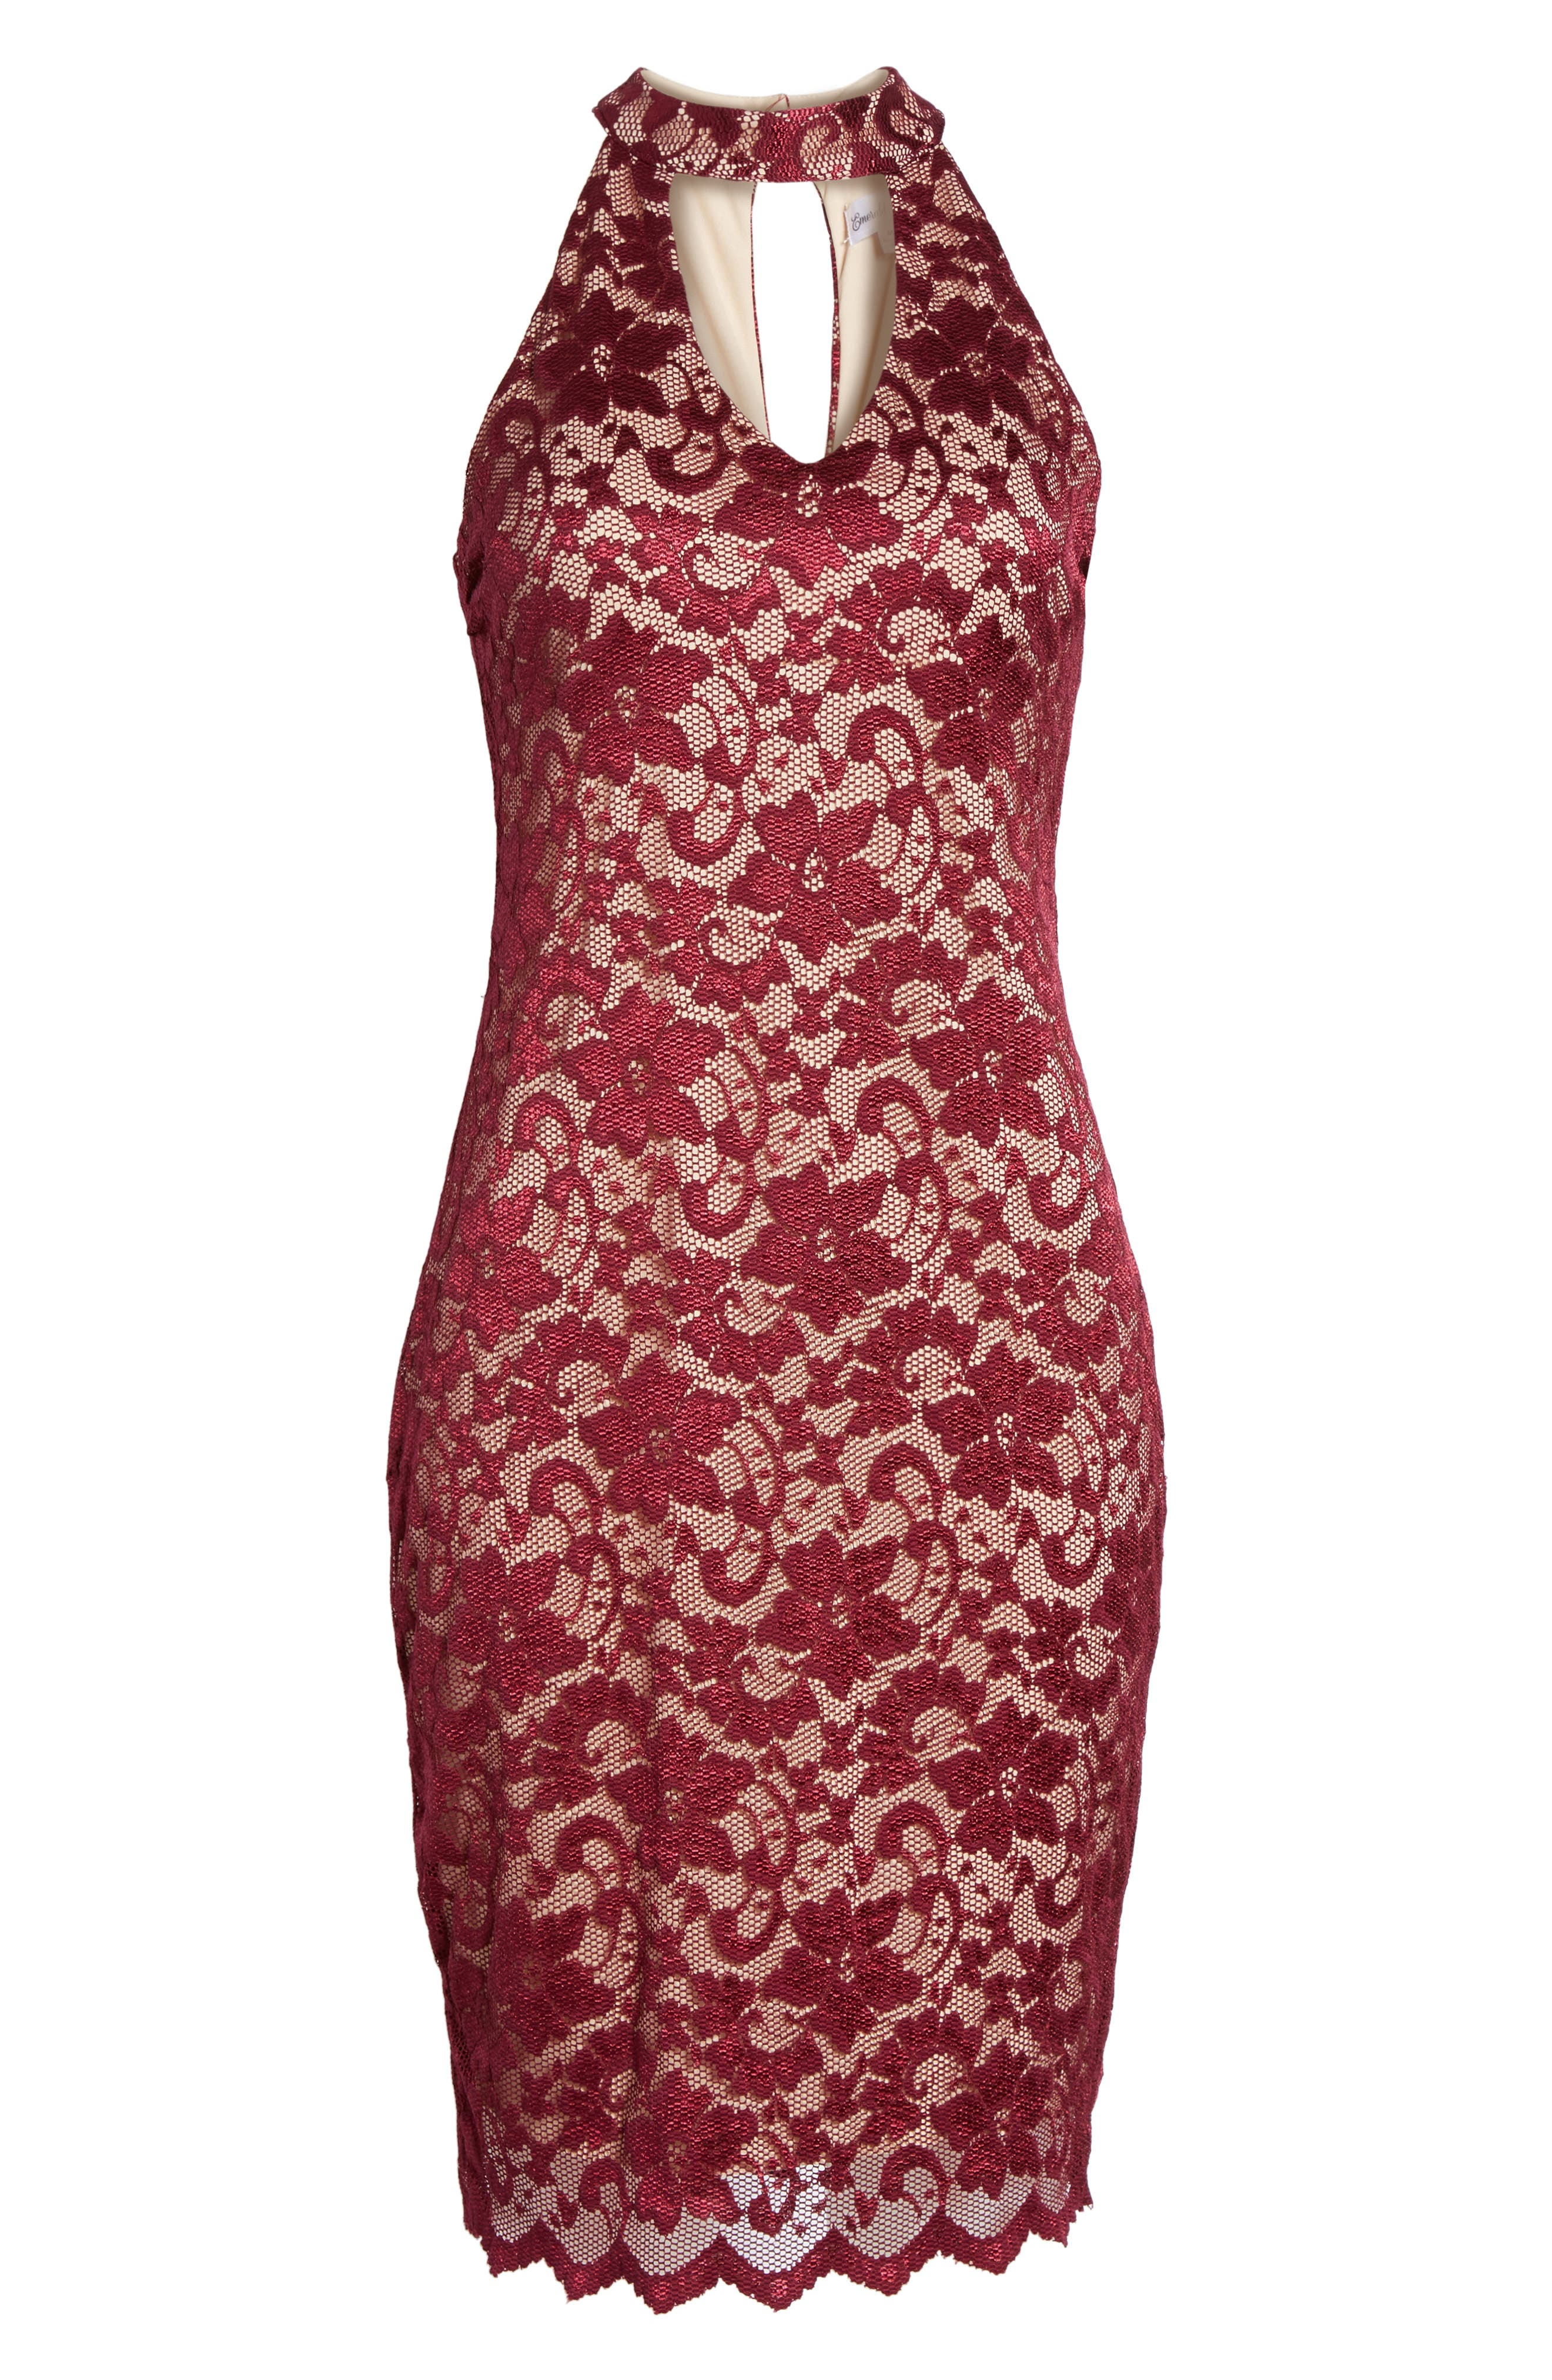 Love Nickie Lew Lace Choker Body Con Dress,                             Alternate thumbnail 6, color,                             930